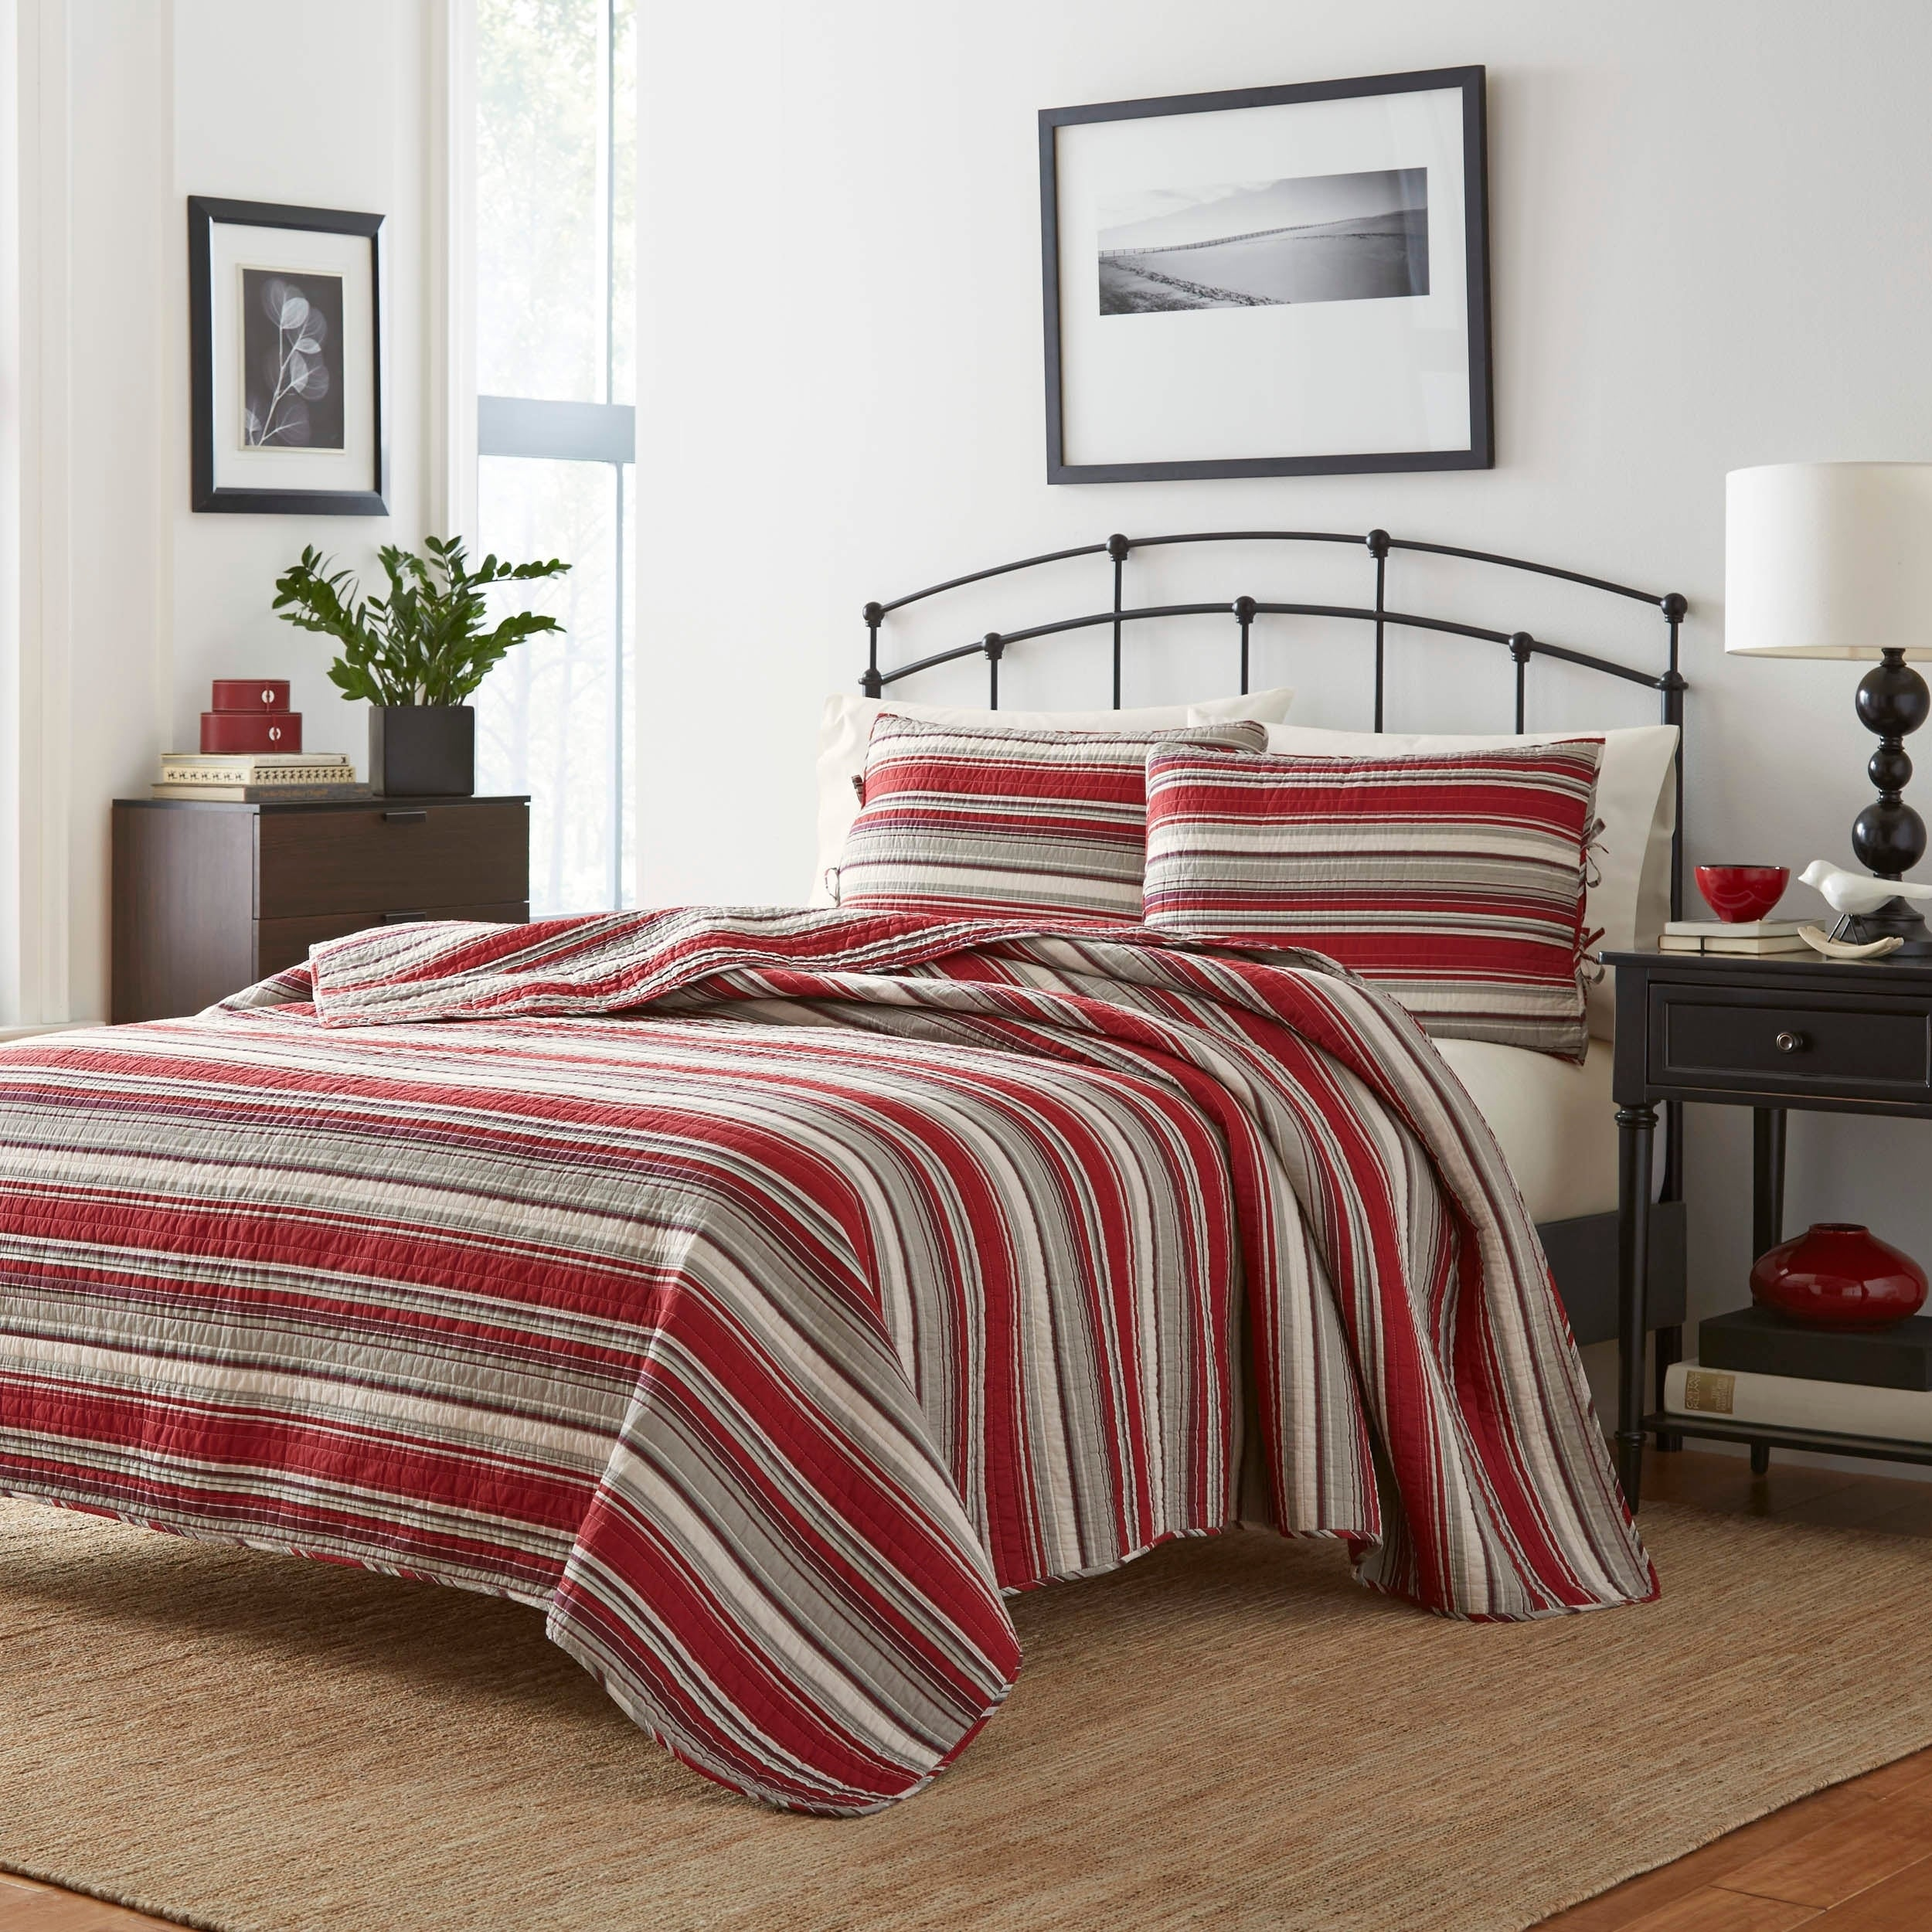 Stone Cottage Quilts & Bedspreads | Find Great Fashion Bedding Deals on quilt color, quilt halloween, quilt pink, quilt kitchen, quilt books, quilt modern, quilt home, quilt fabrics, quilt storage, quilt room ideas, quilt green, quilt bedroom design,